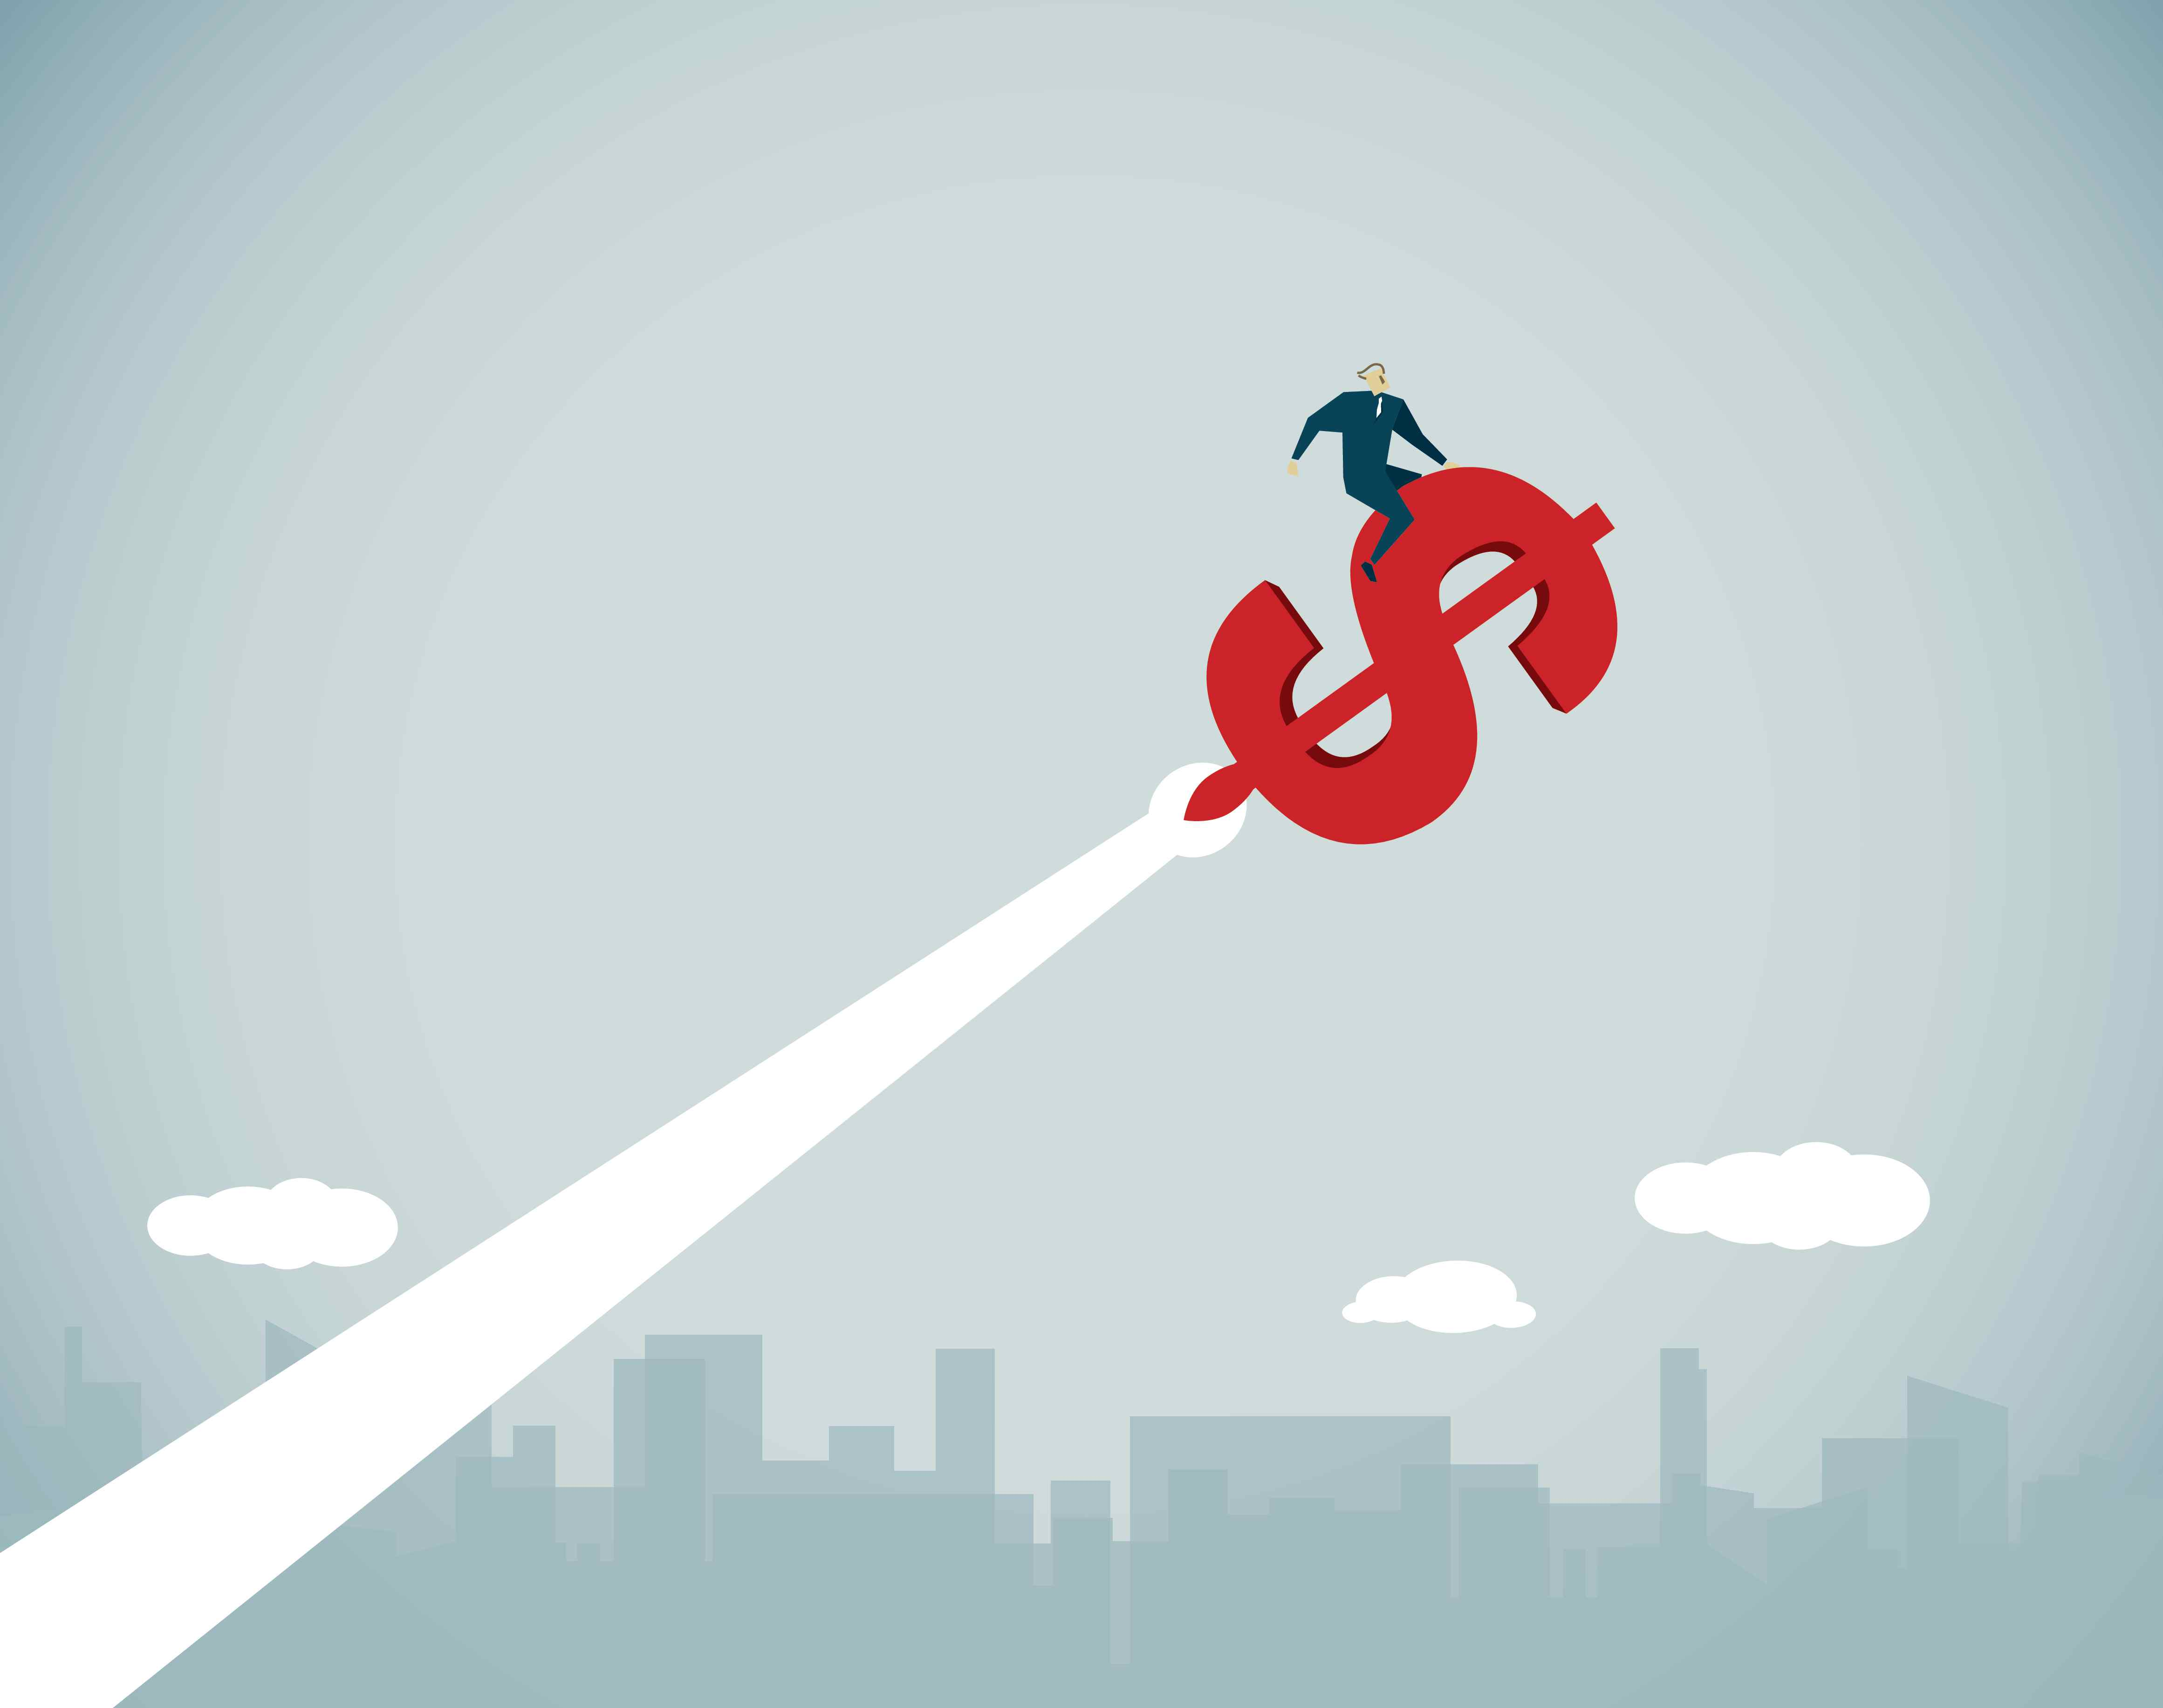 Illustration of a man riding a dollar sign into the sky representing career advancement.